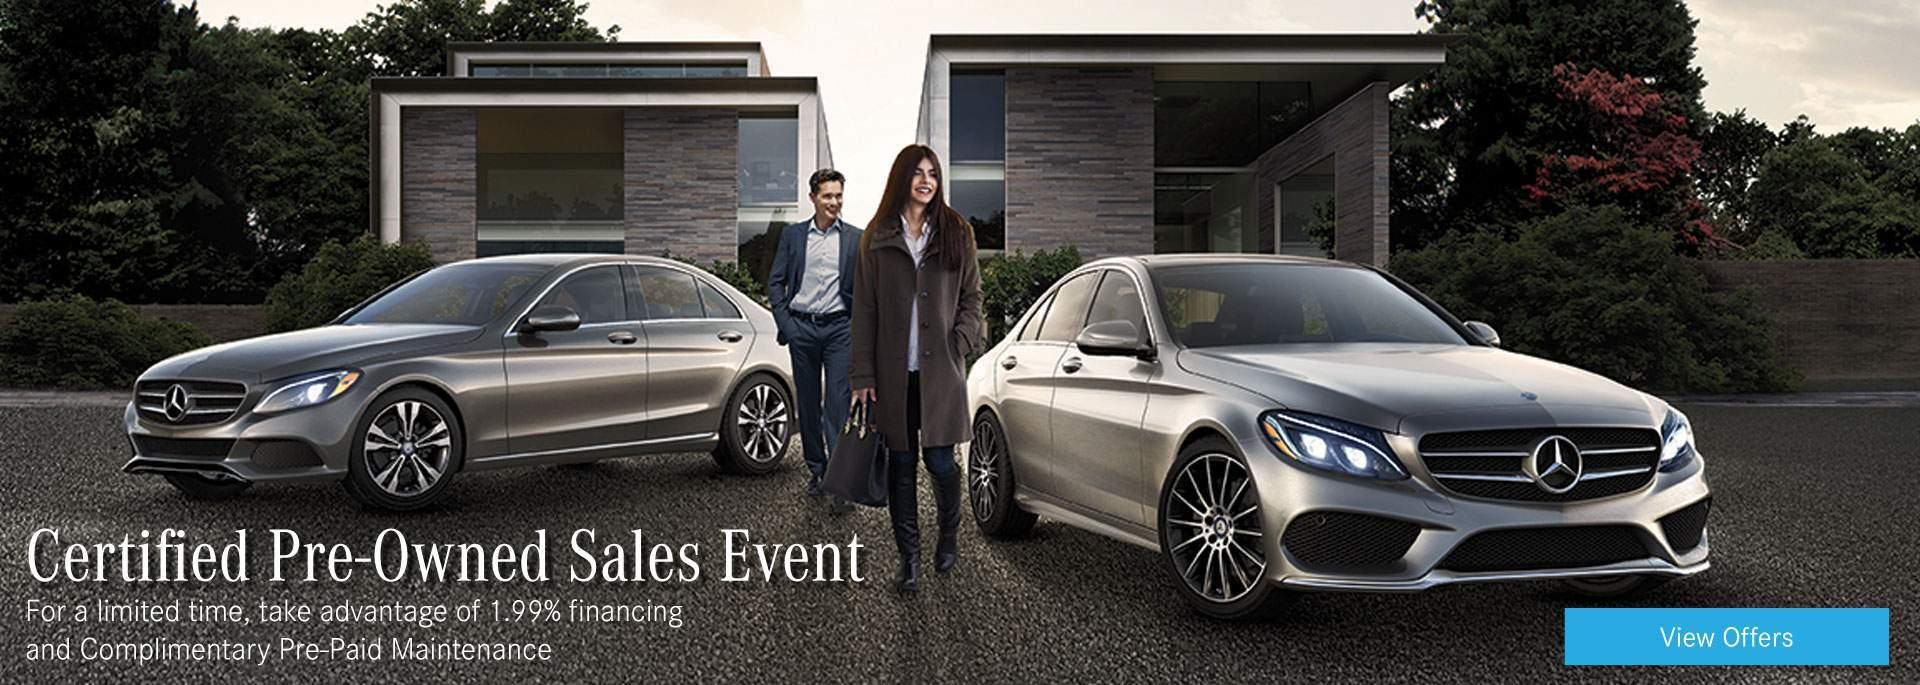 Mercedes Benz Dealership Bowling Green Ky Used Cars Luxury